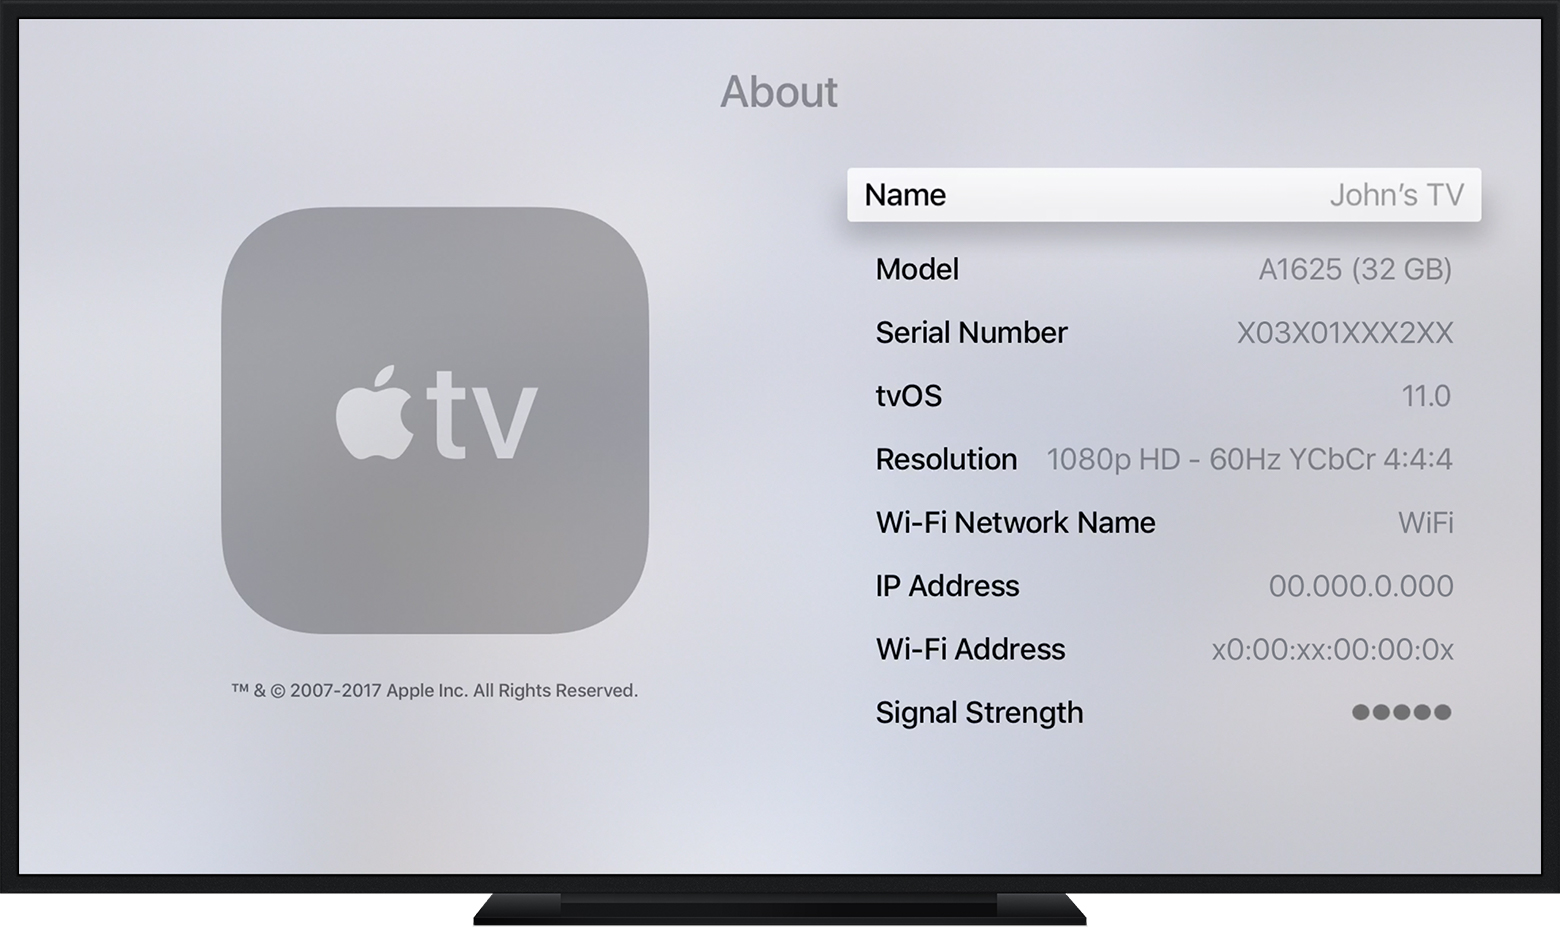 Why can t i see my icloud photos on apple tv howsto co for Mirror for samsung tv license key